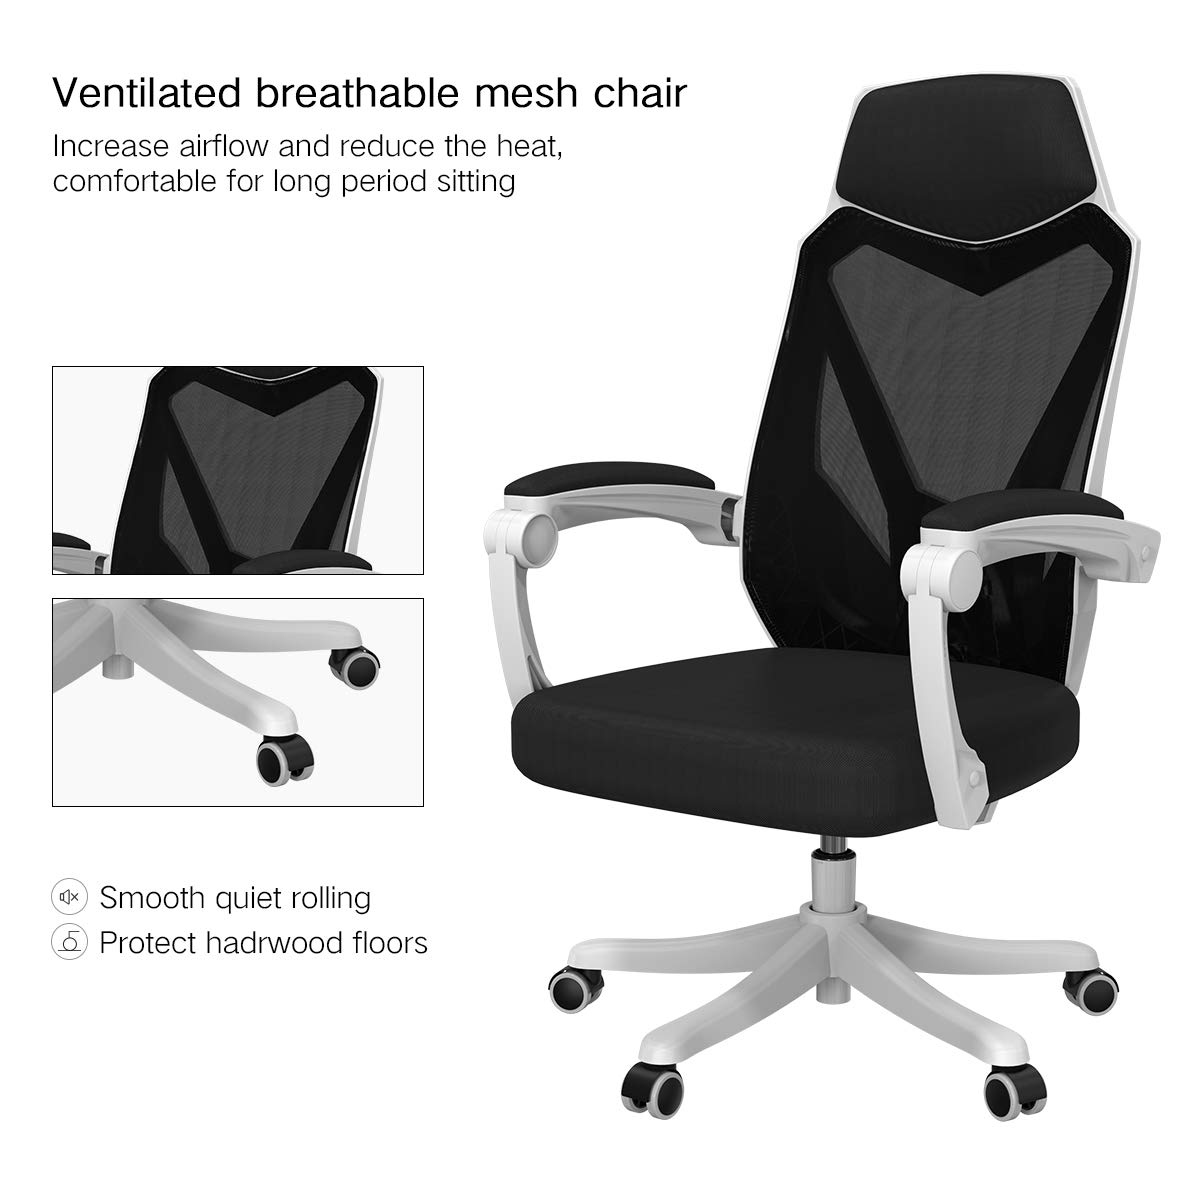 Hbada Office Computer Desk Chair - Ergonomic High-Back Swivel Task Gaming Chair - White by Hbada (Image #5)